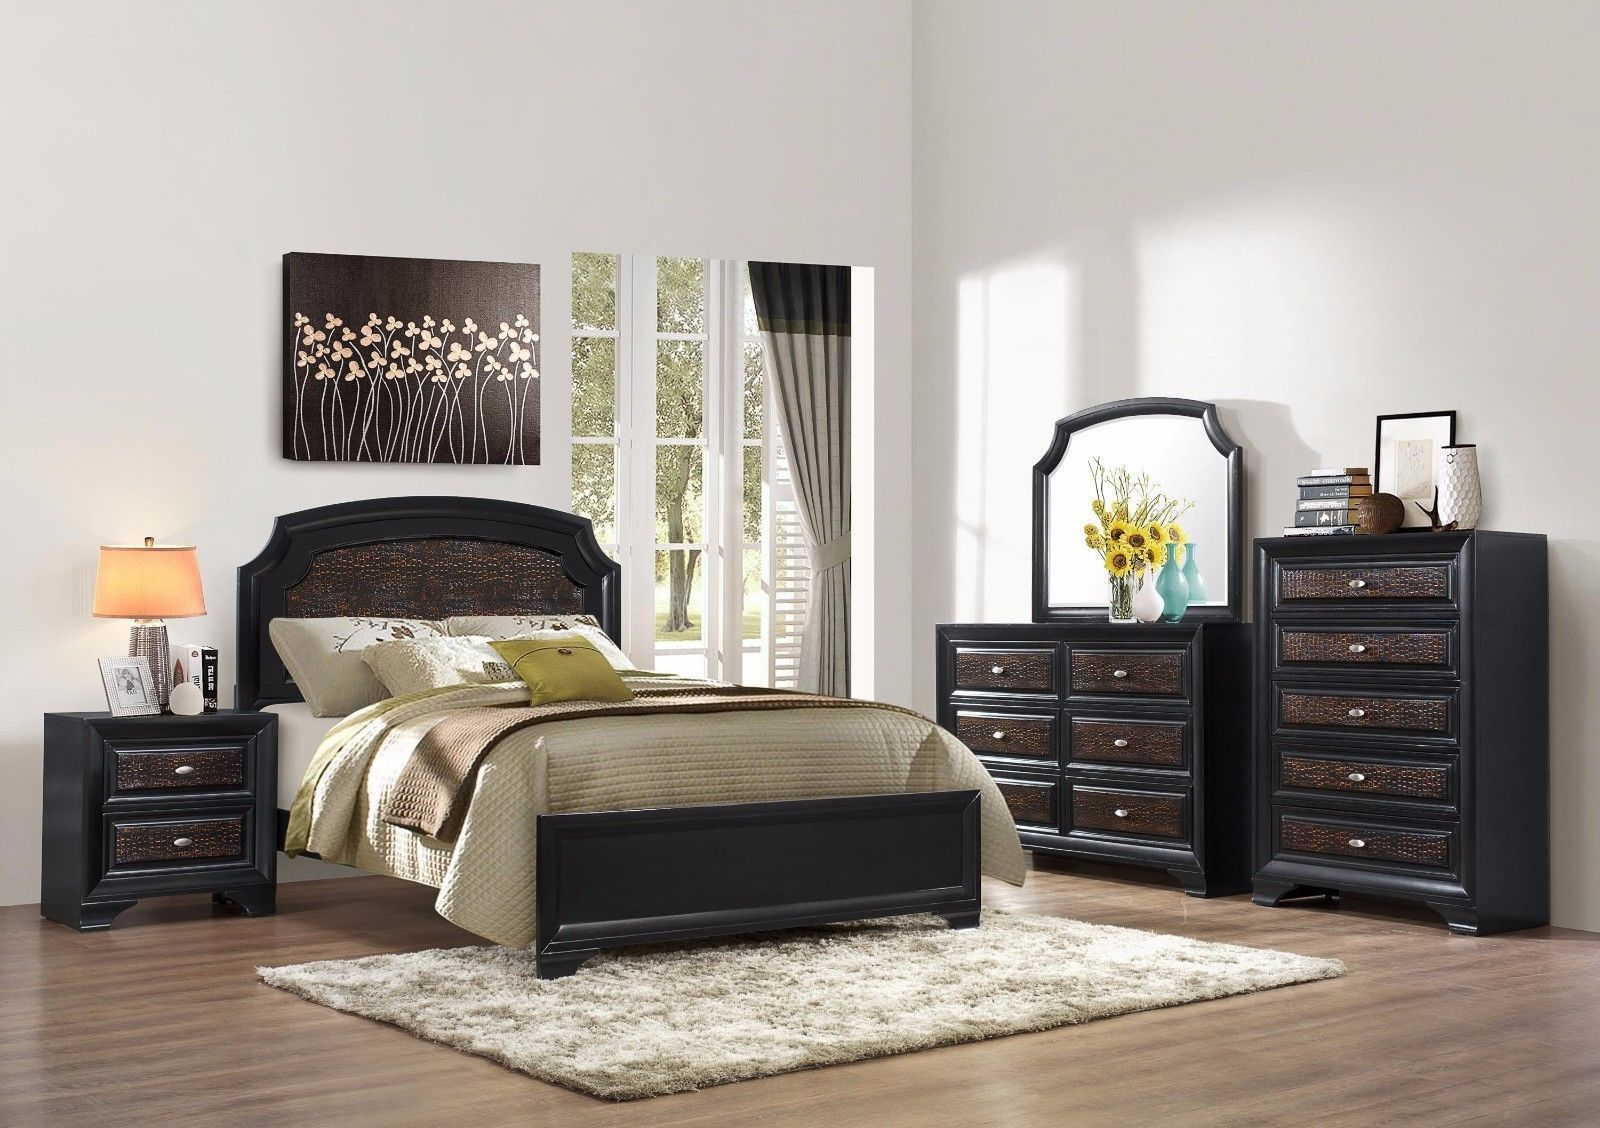 Crown Mark RB4300 Andros Queen Size Bedroom Set 5pc. Traditional style